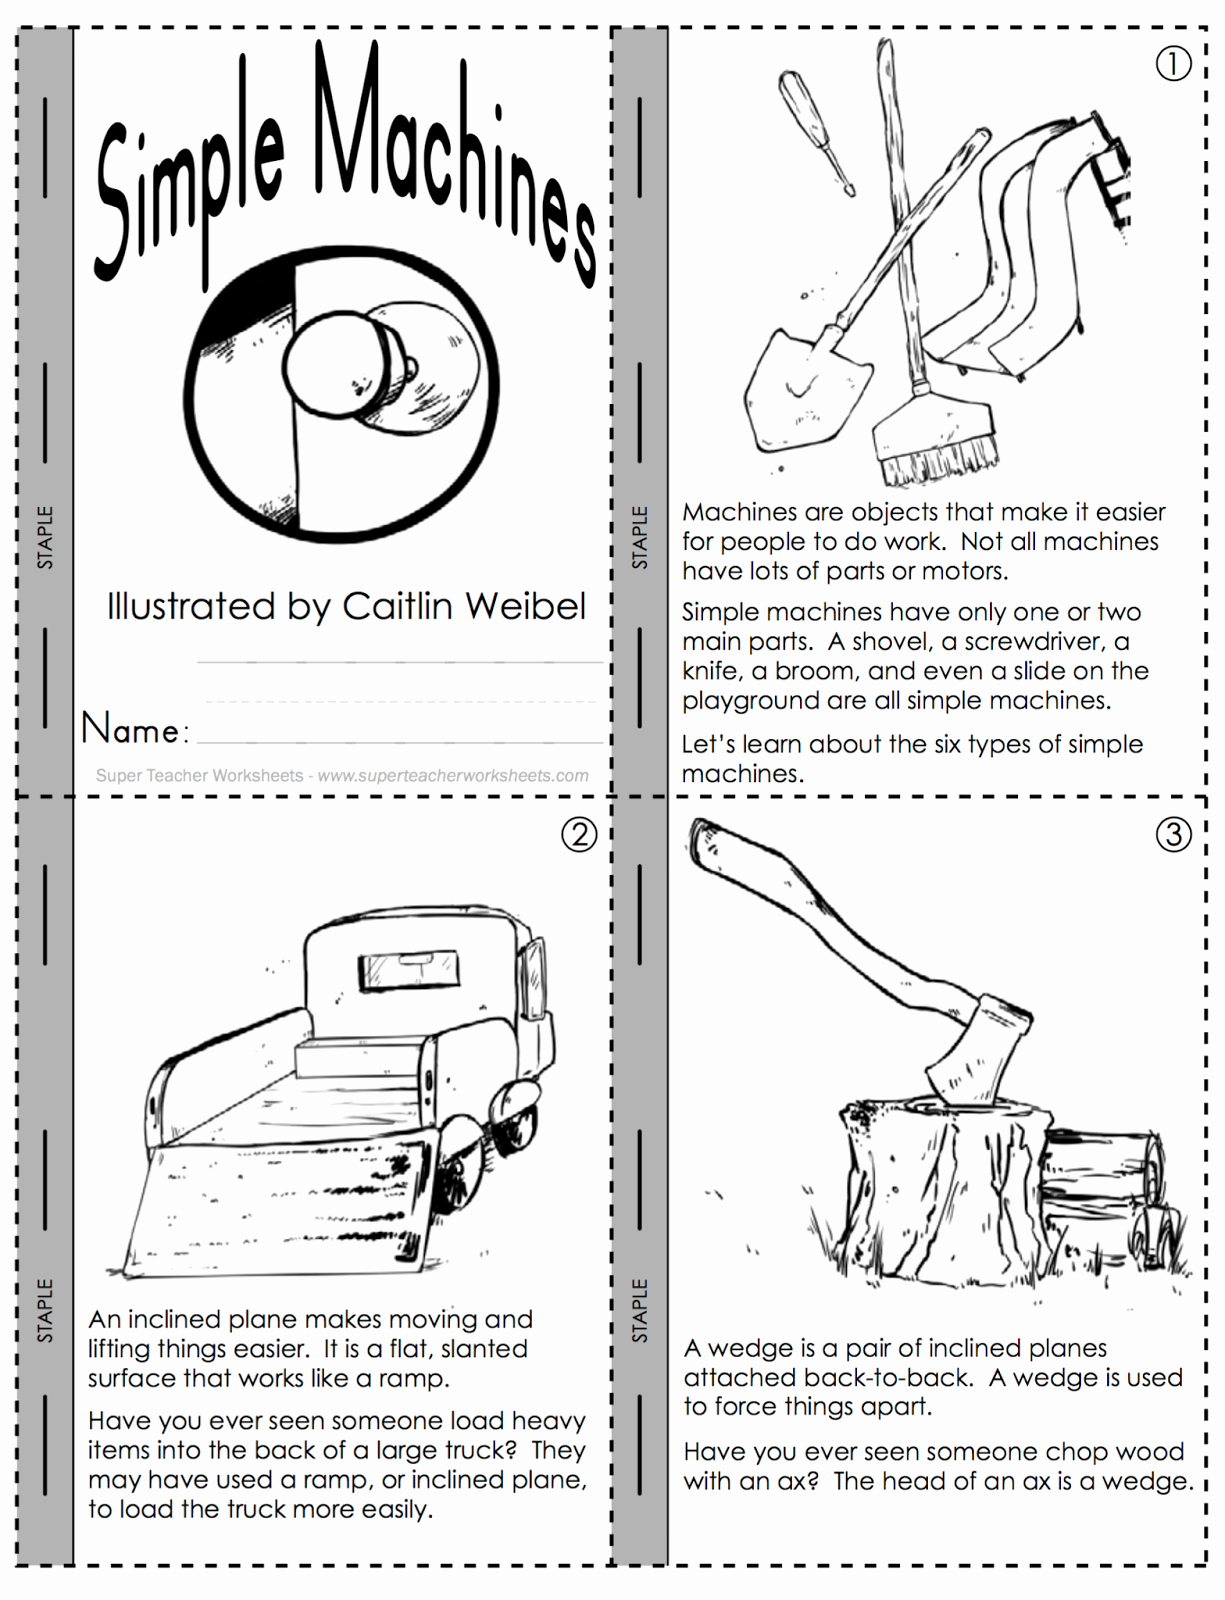 Simple Machines Worksheet Answers Elegant Worksheet Simple Machines Worksheets Grass Fedjp